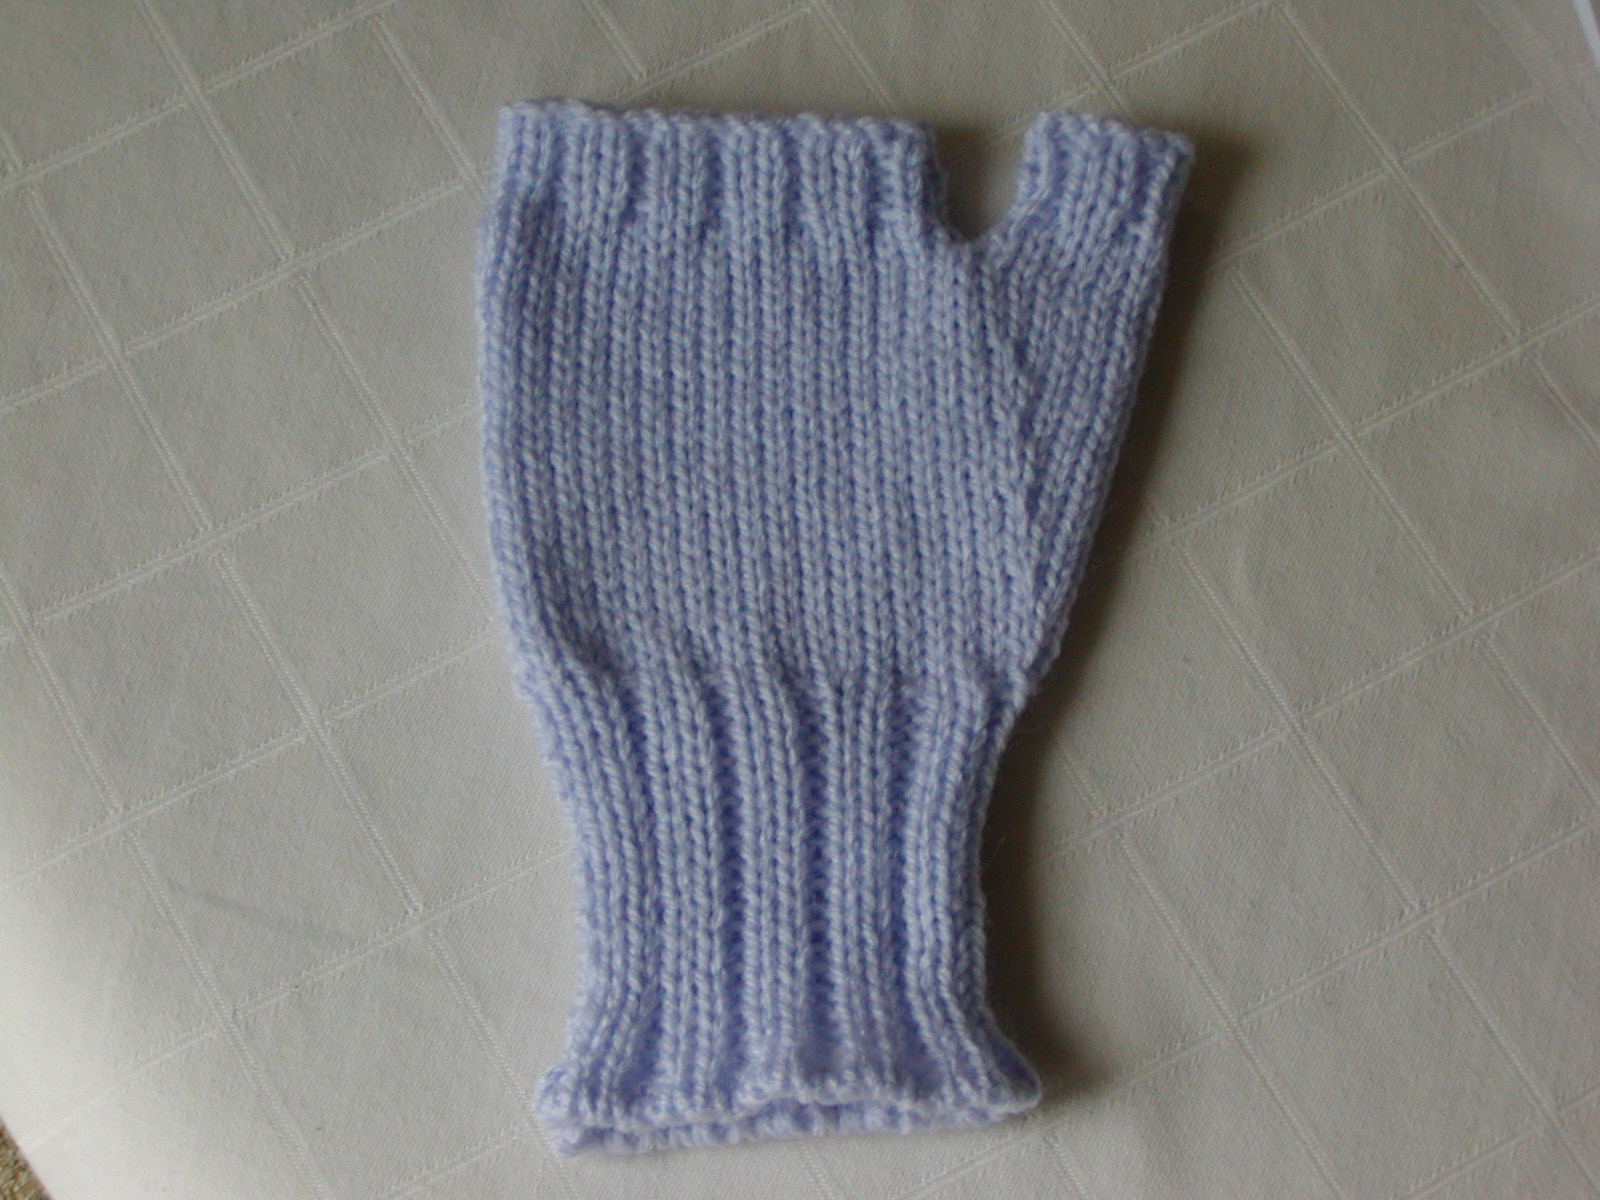 Knit Glove Pattern : Addicted to Machine Knitting: Fingerless Gloves Machine Knitting Pattern